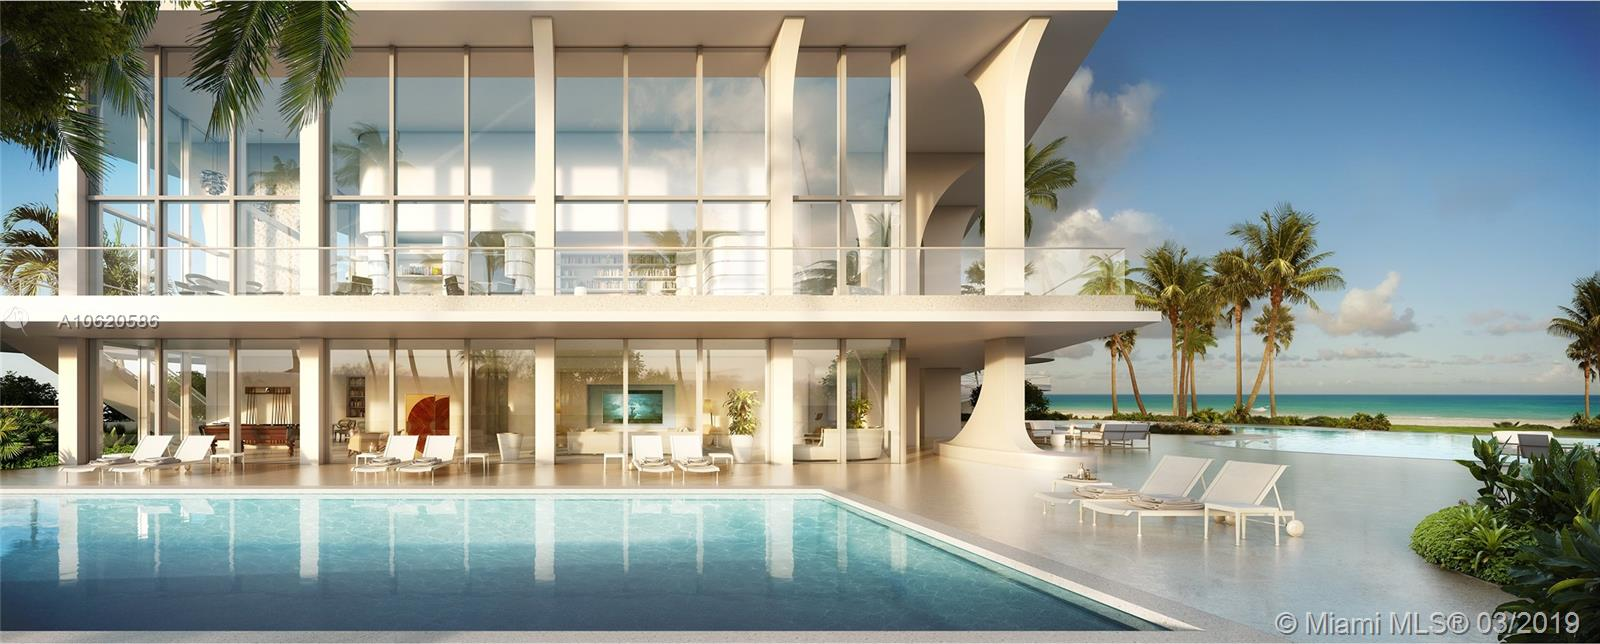 Ready to move in!! Fantastic unit at the brand new Jade Signature. Designed by Herzog and DeMeuron. This property has marble floors, high end finishes, decorator ready, open view to the ocean, club room, Bistro Café, business center, play room, Beach Bar & Grill and more!  *SQ FT AS PER OWNER*